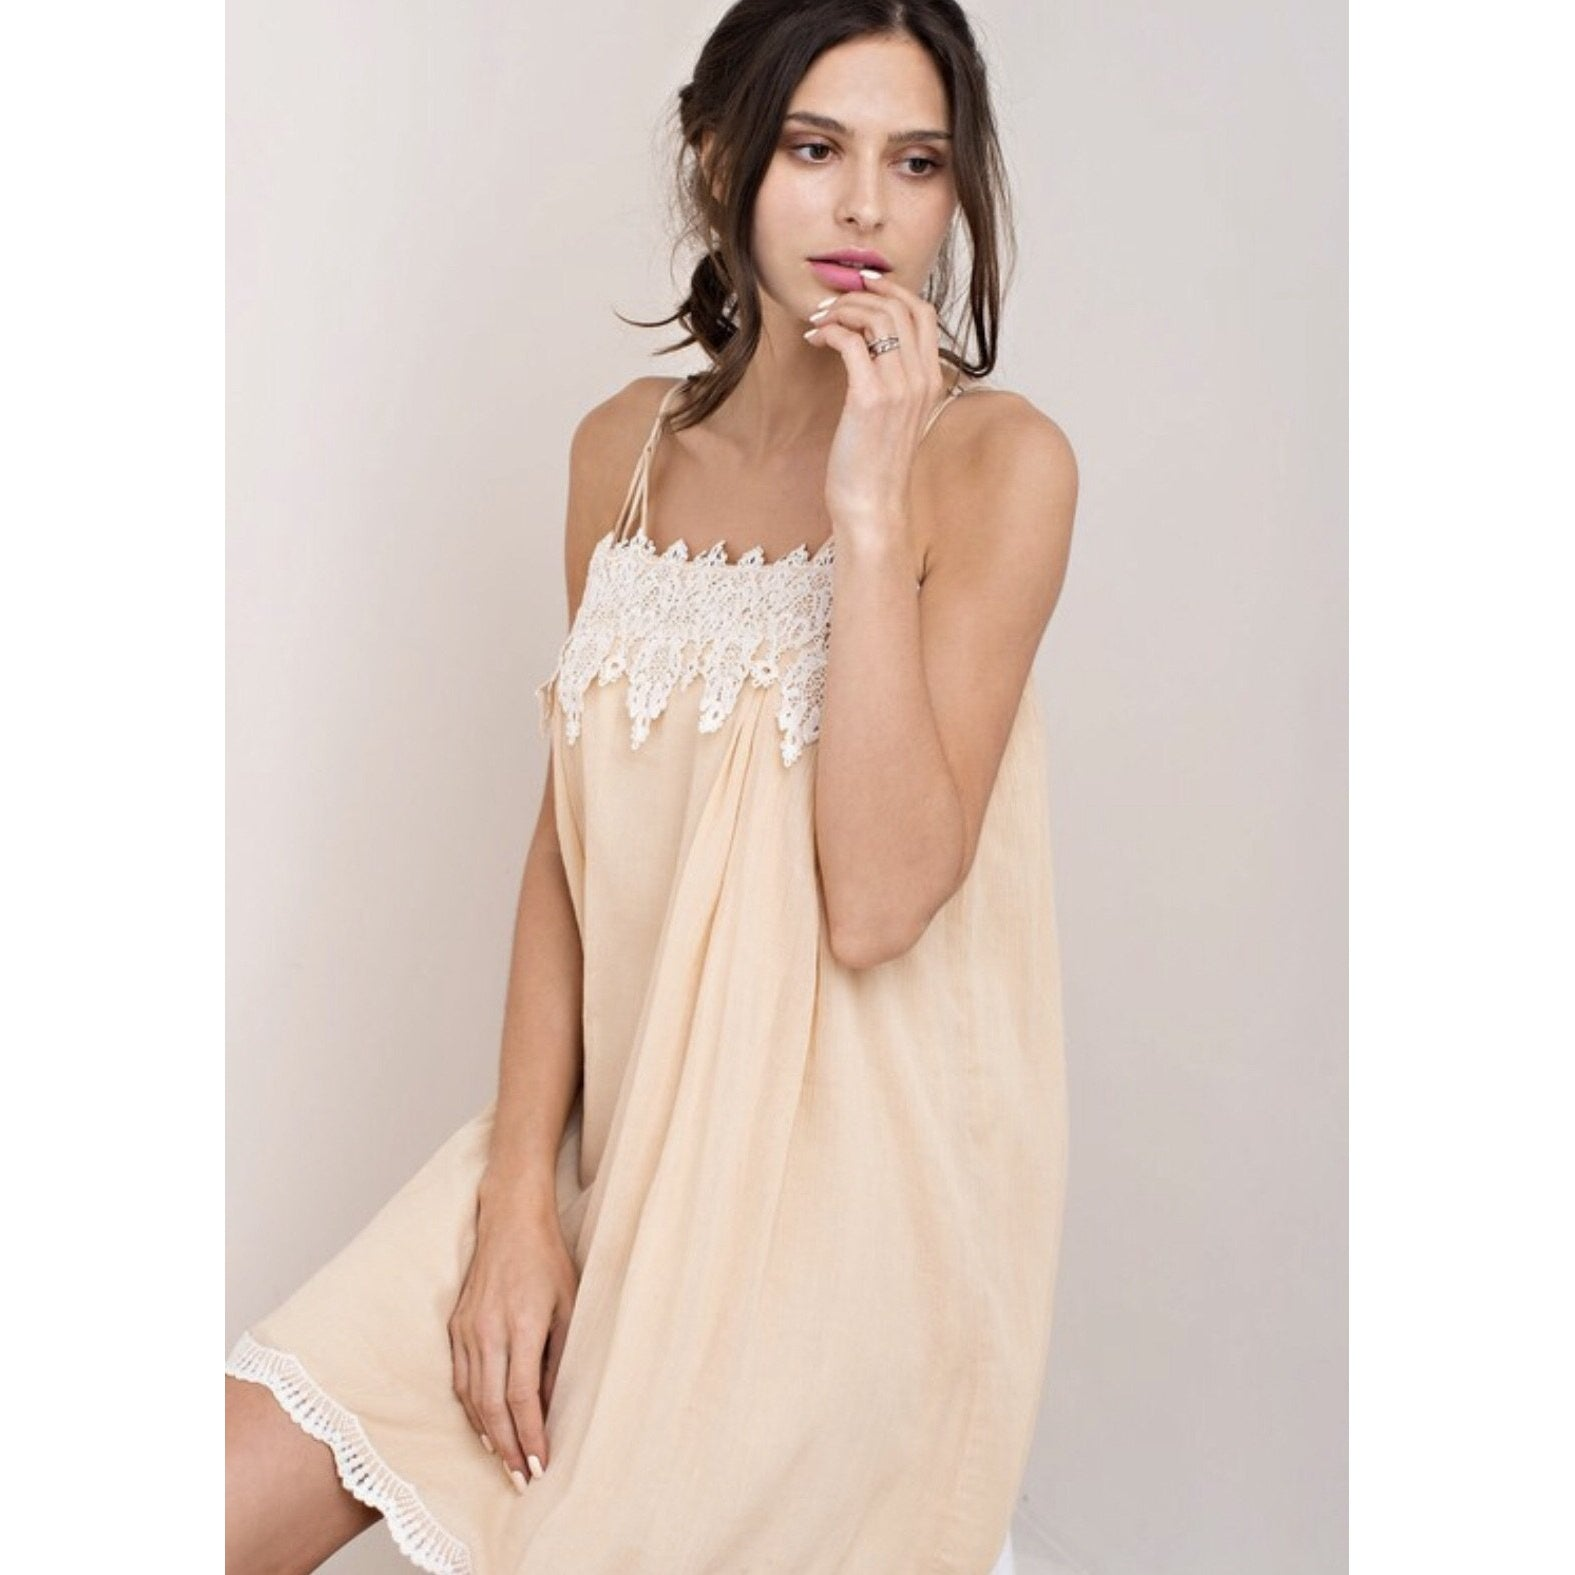 Bisque Crepe Dress